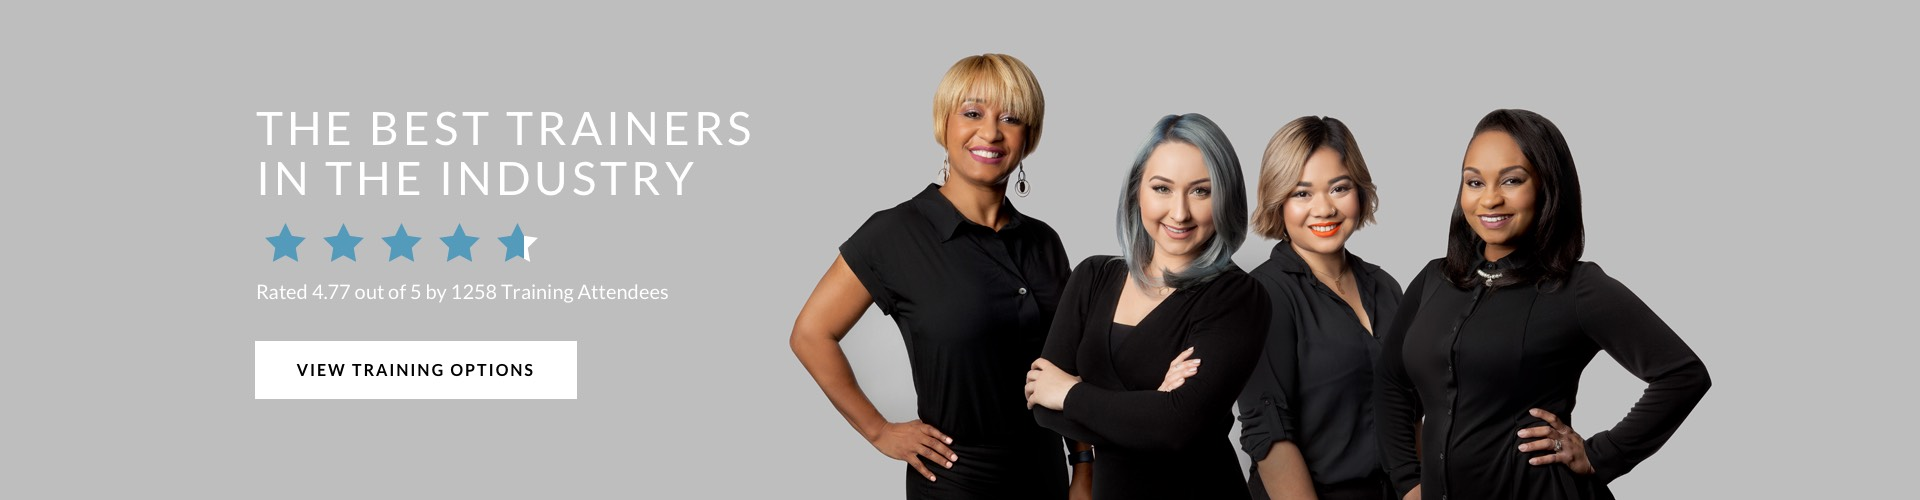 6249ed7eb38 The Best Trainers in the Industry. Rated 4.77 out of 5 by 1258 Training  Attendees · The X90 Eyelash Extension ...